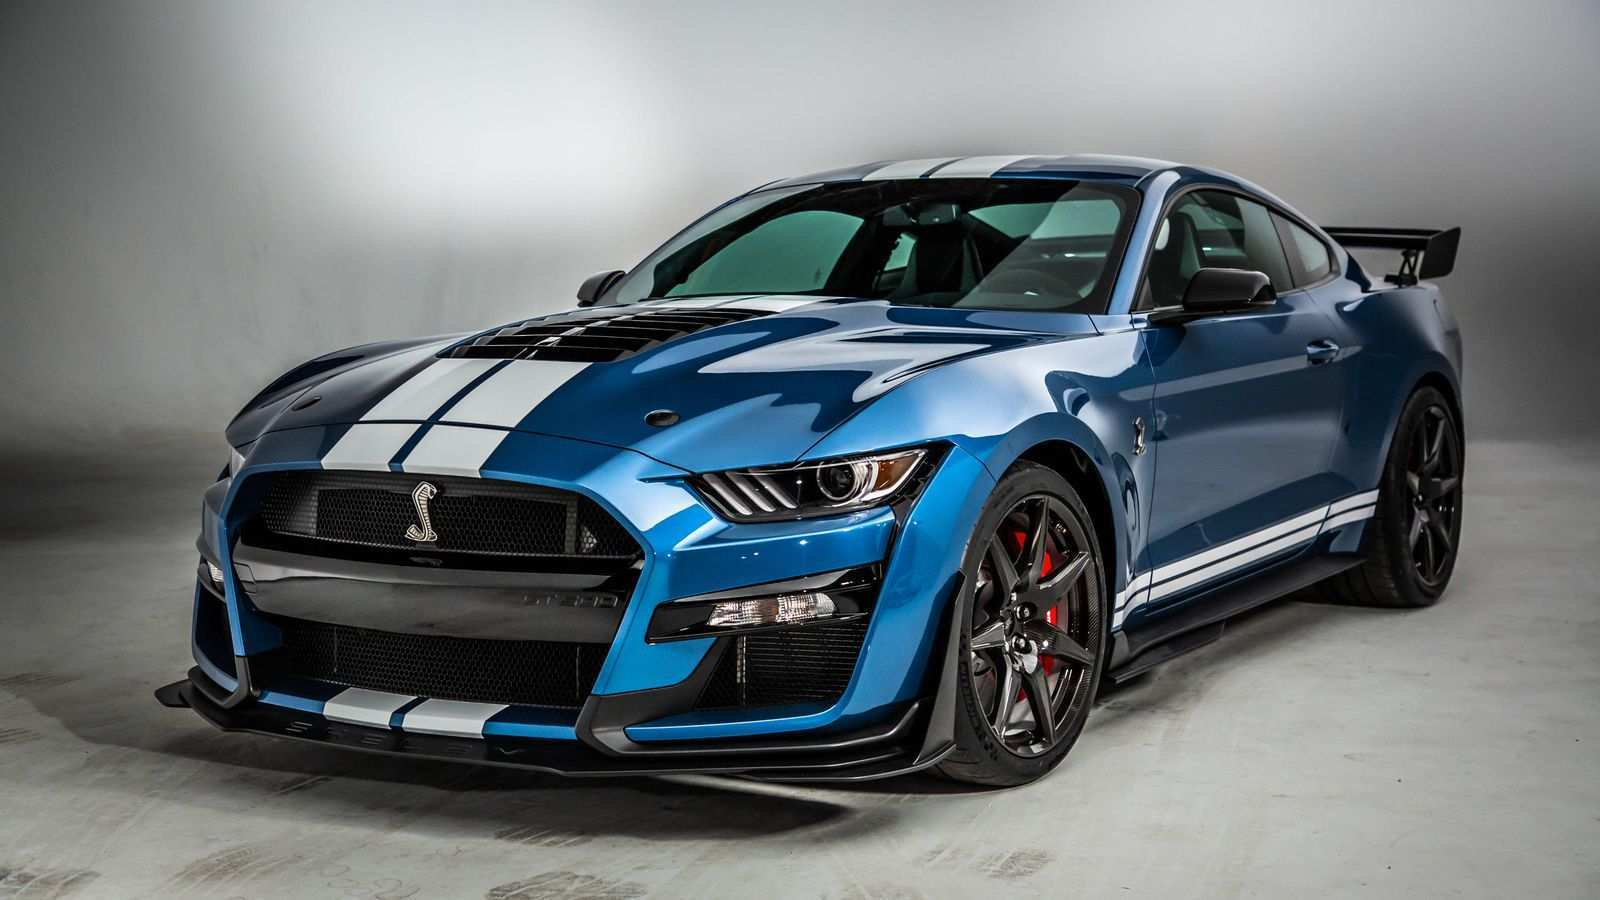 57 New 2020 Ford Mustang Shelby Gt 350 Concept